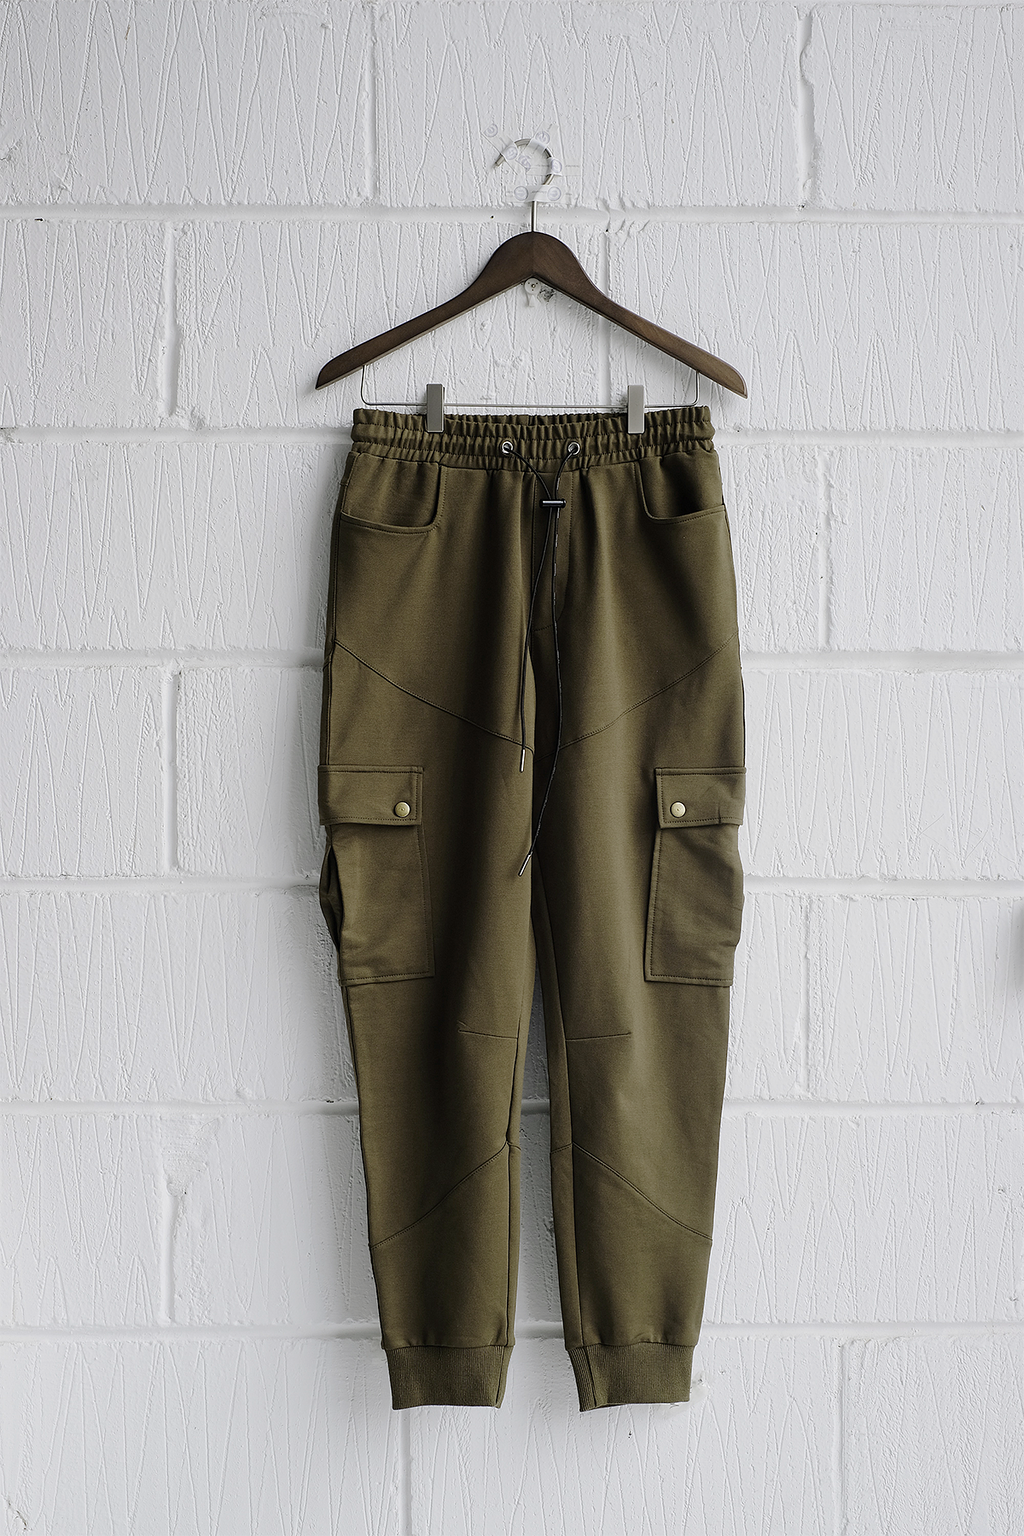 SAMPLE PANTS — KHAKI CARGO